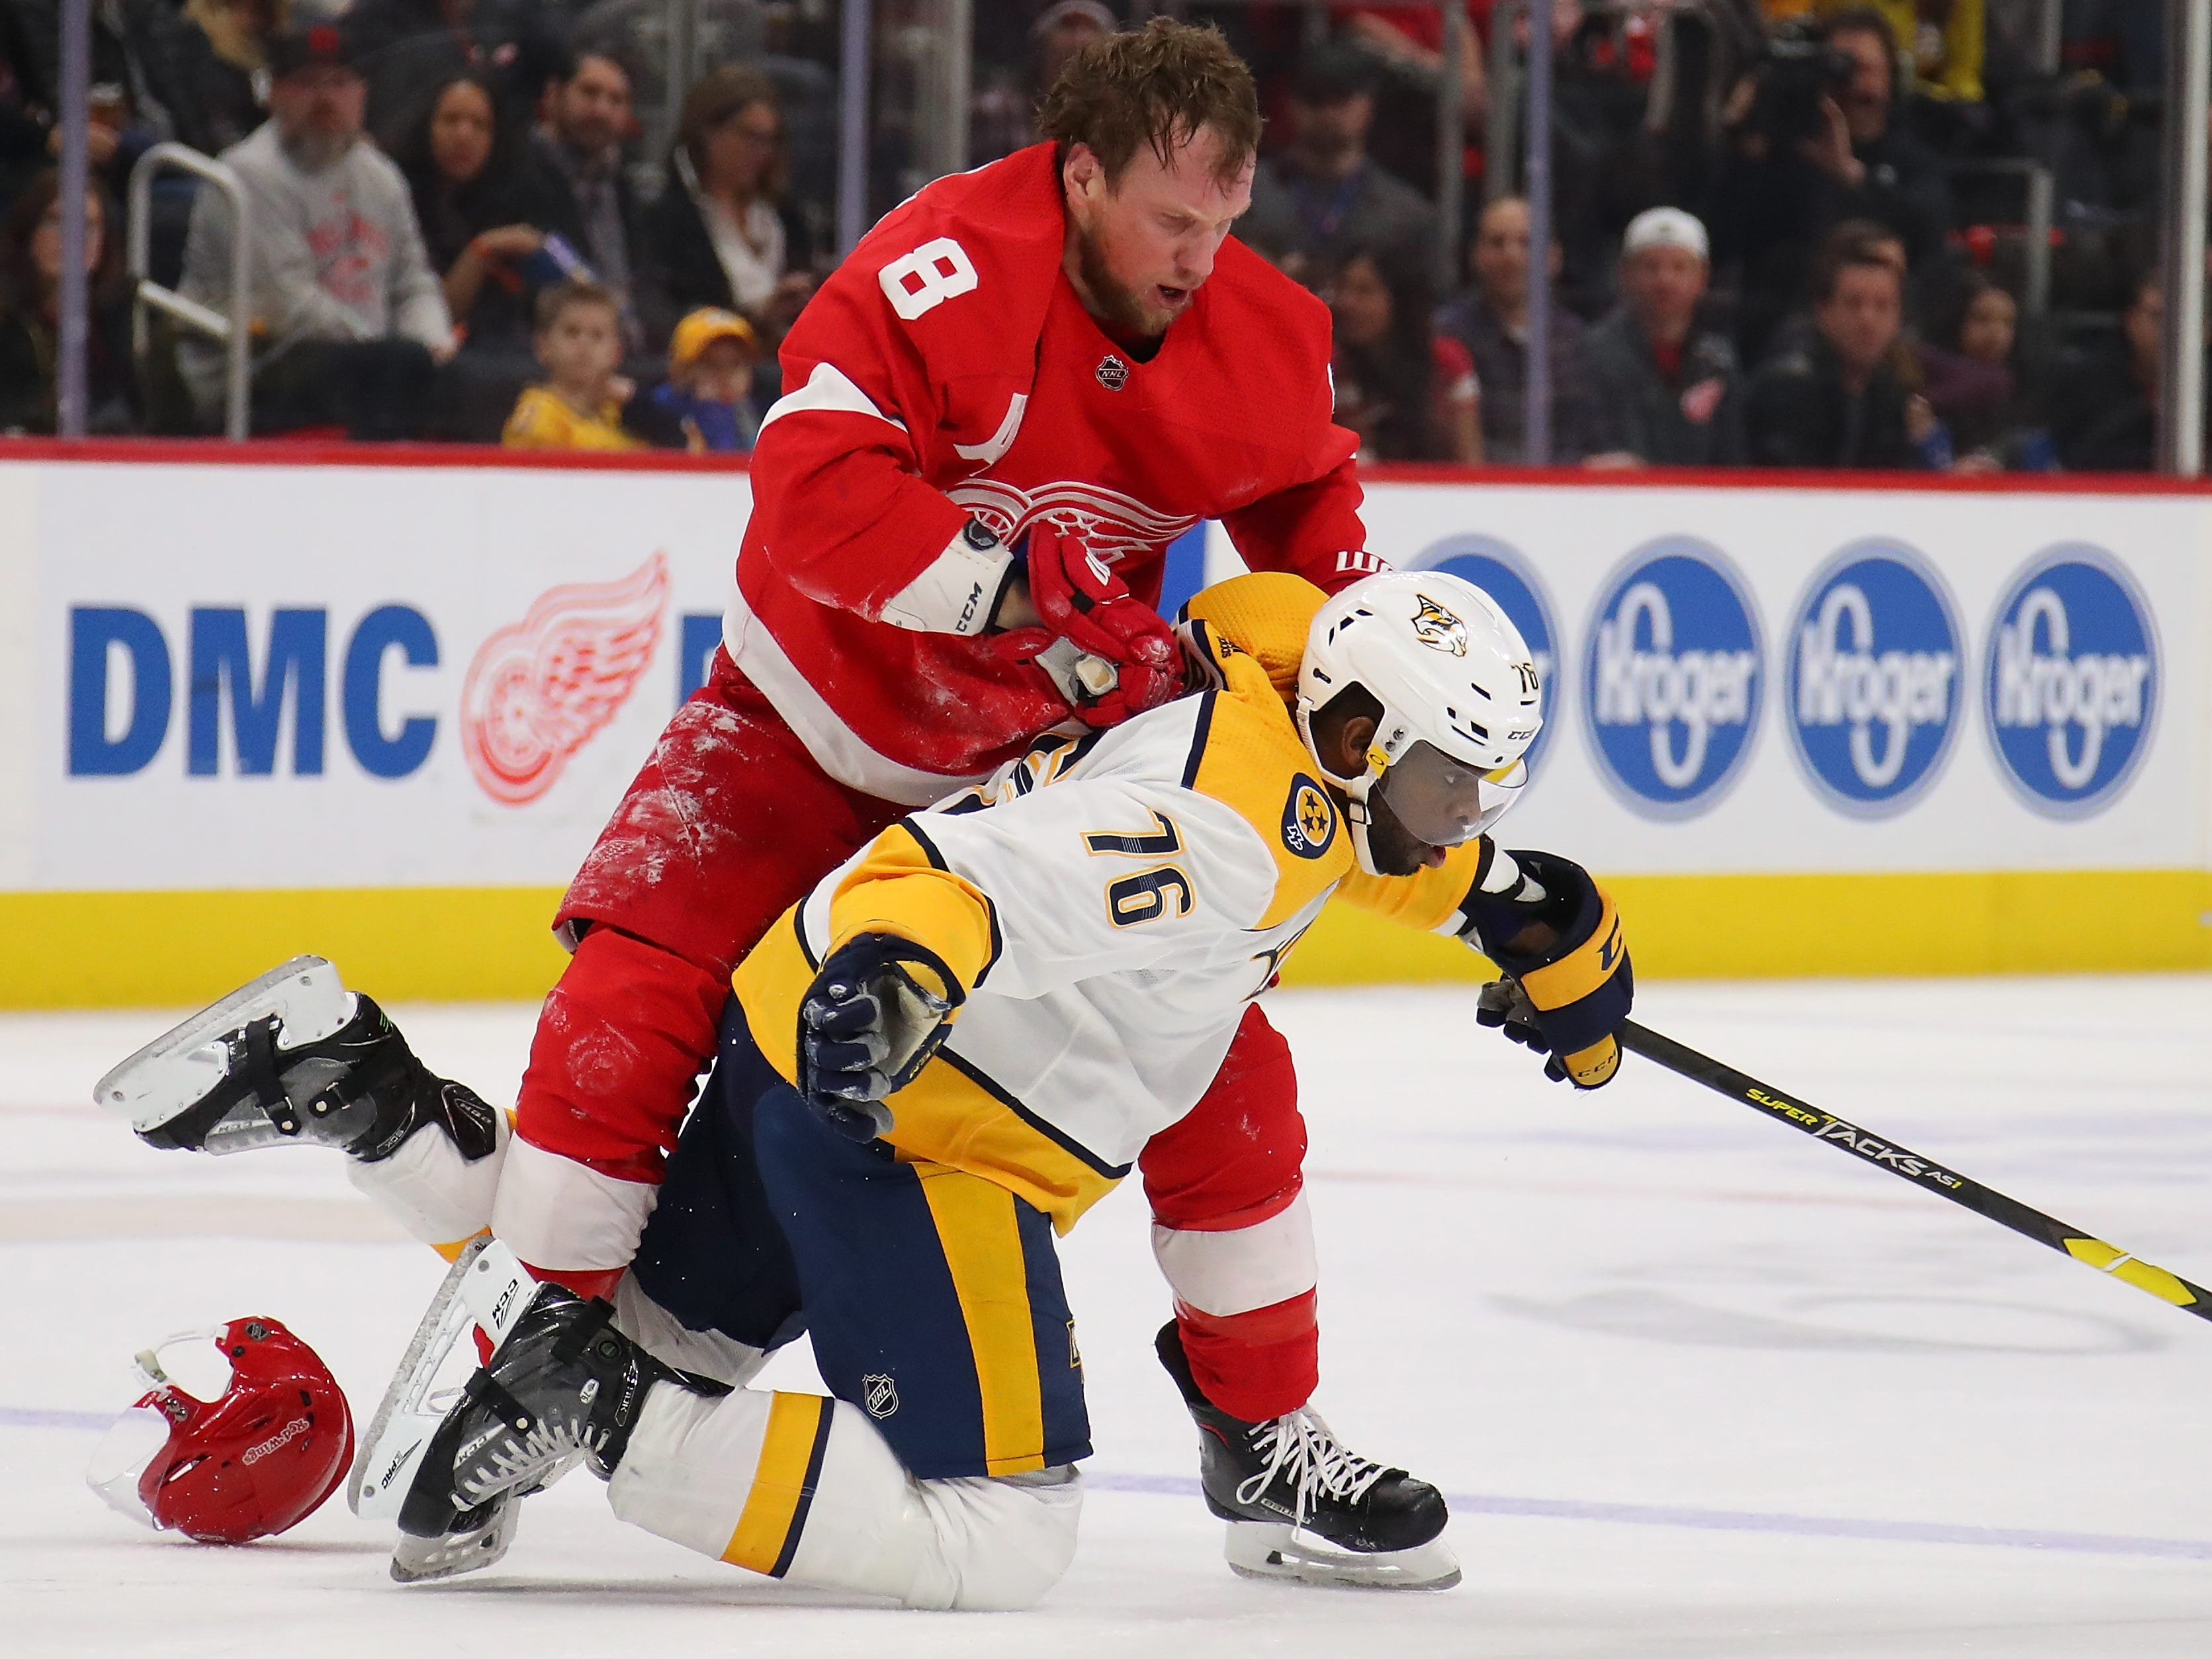 Red Wings'  Justin Abdelkader (8) battles with Predartors' P.K. Subban (76)\ during the first period.